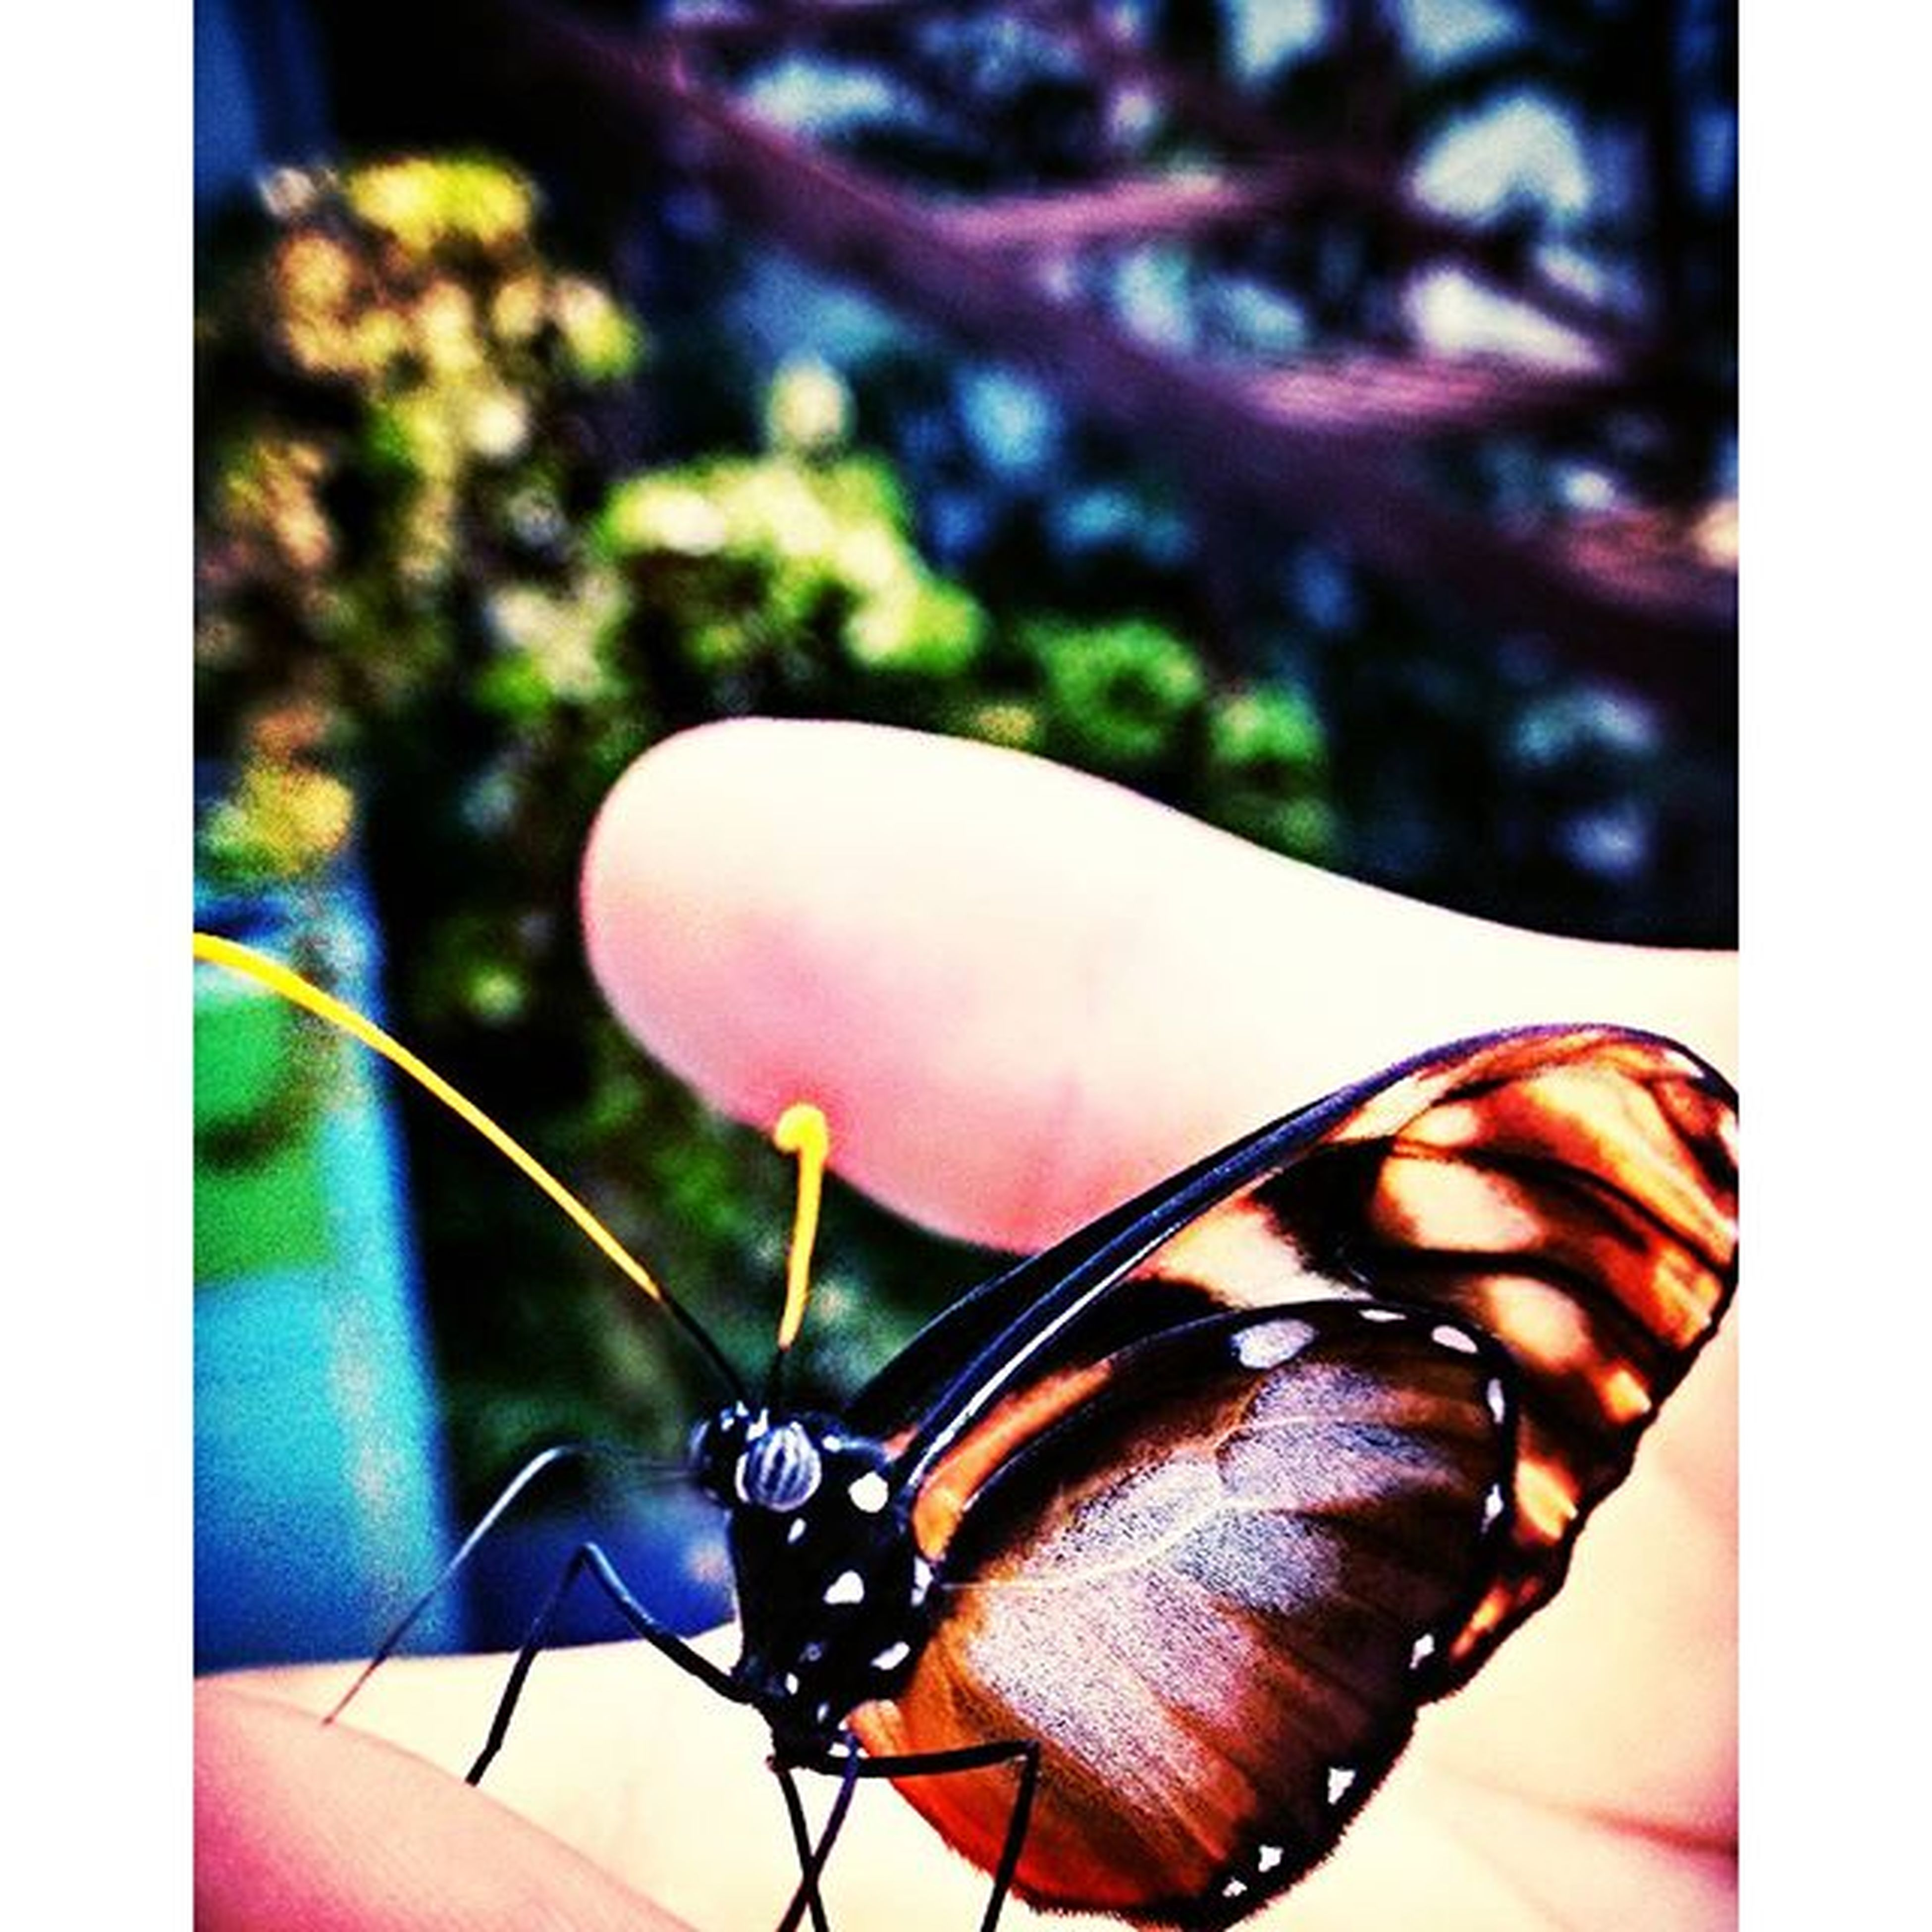 person, insect, one animal, transfer print, part of, close-up, auto post production filter, animal themes, holding, wildlife, focus on foreground, animals in the wild, human finger, cropped, lifestyles, unrecognizable person, butterfly - insect